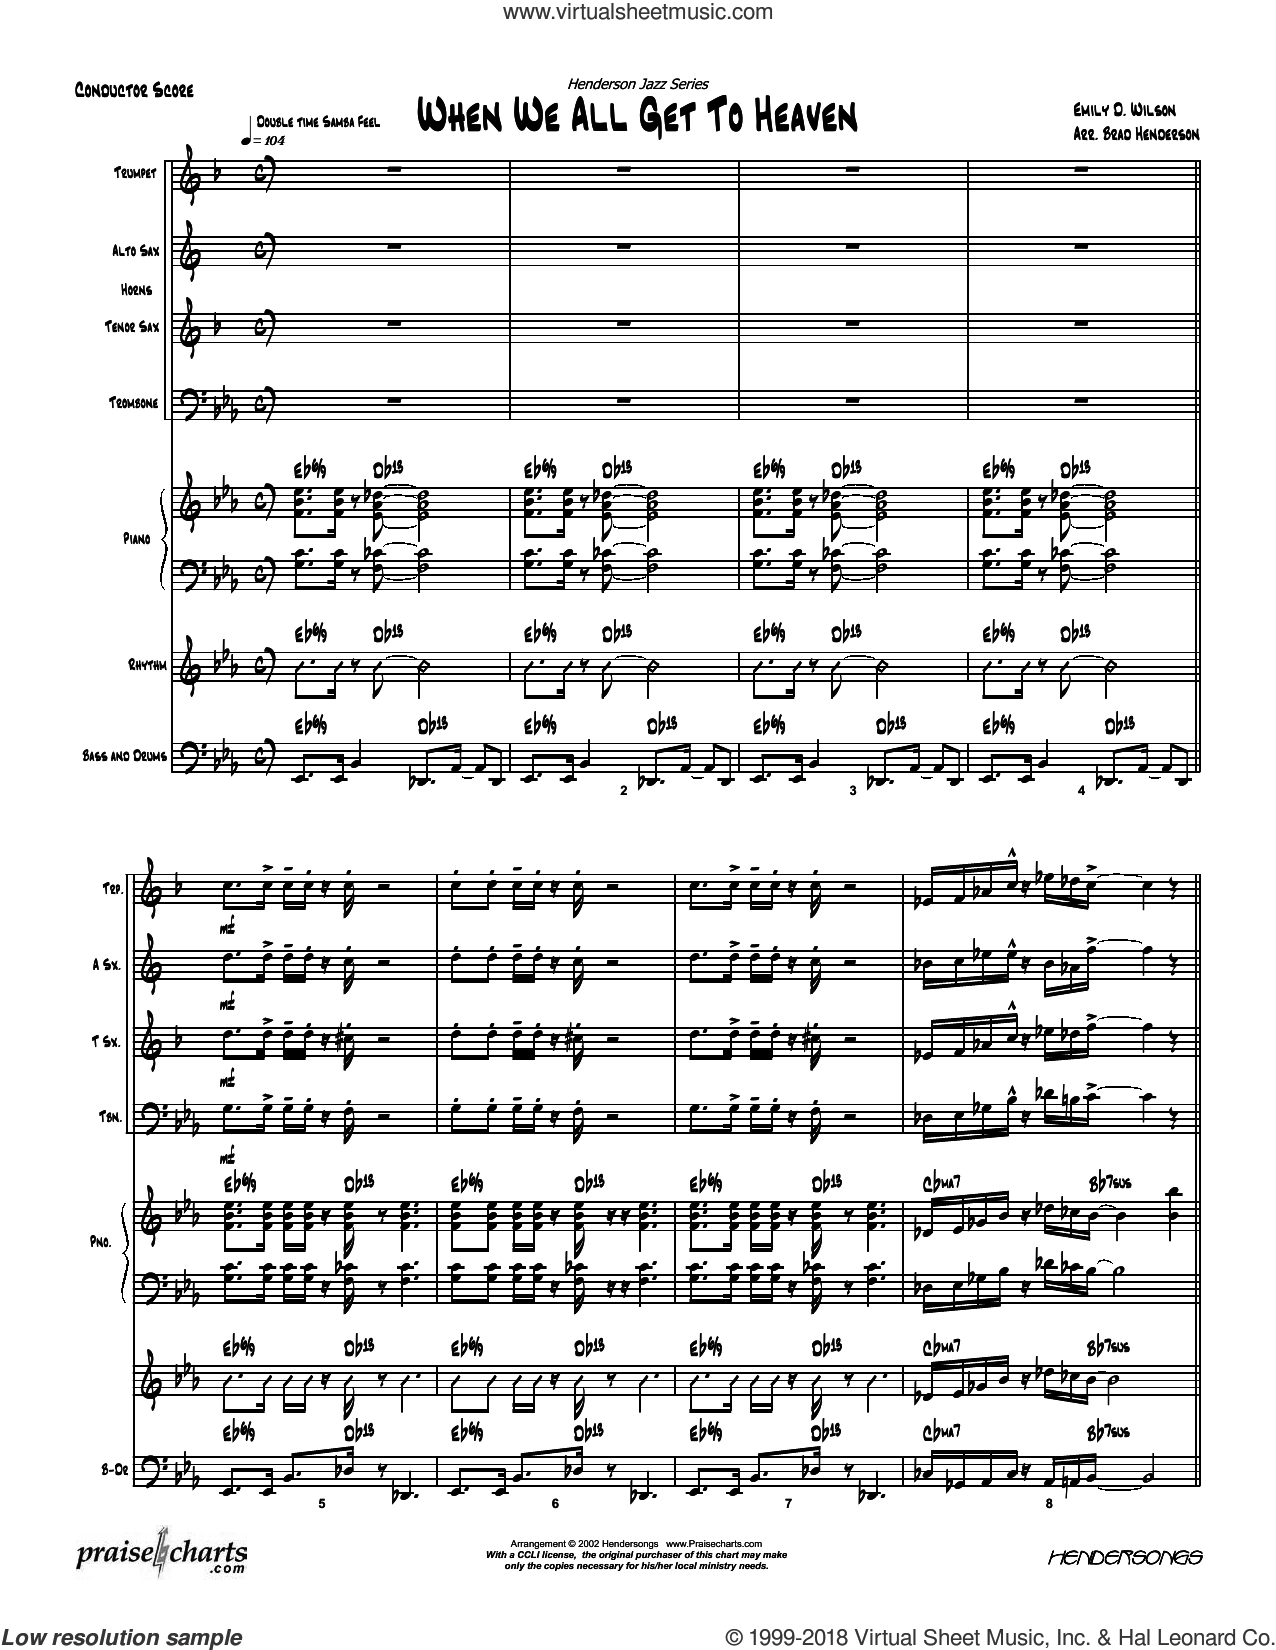 When We All Get to Heaven sheet music for concert band (orchestration, orchestration) by Brad Henderson and Emily D. Wilson, intermediate orchestra. Score Image Preview.